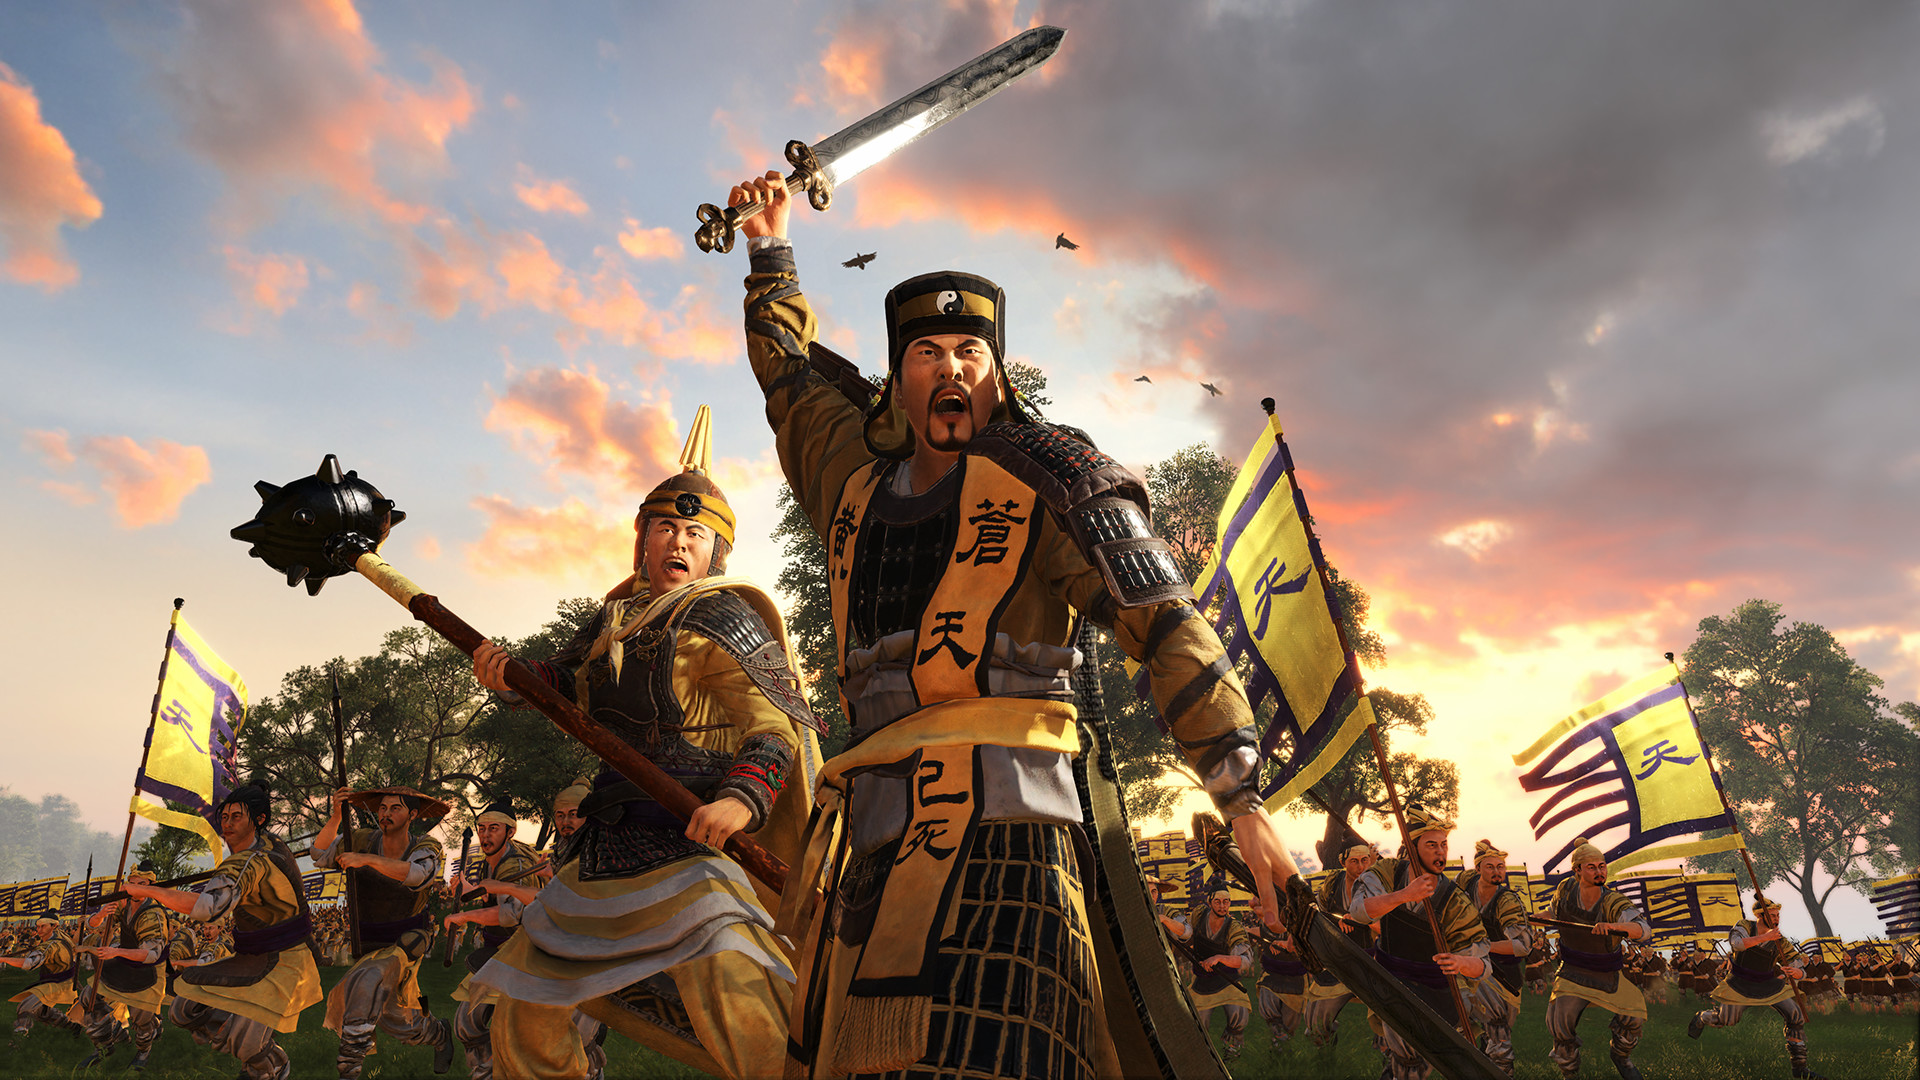 Is Total War: Medieval the next historical Total War game?